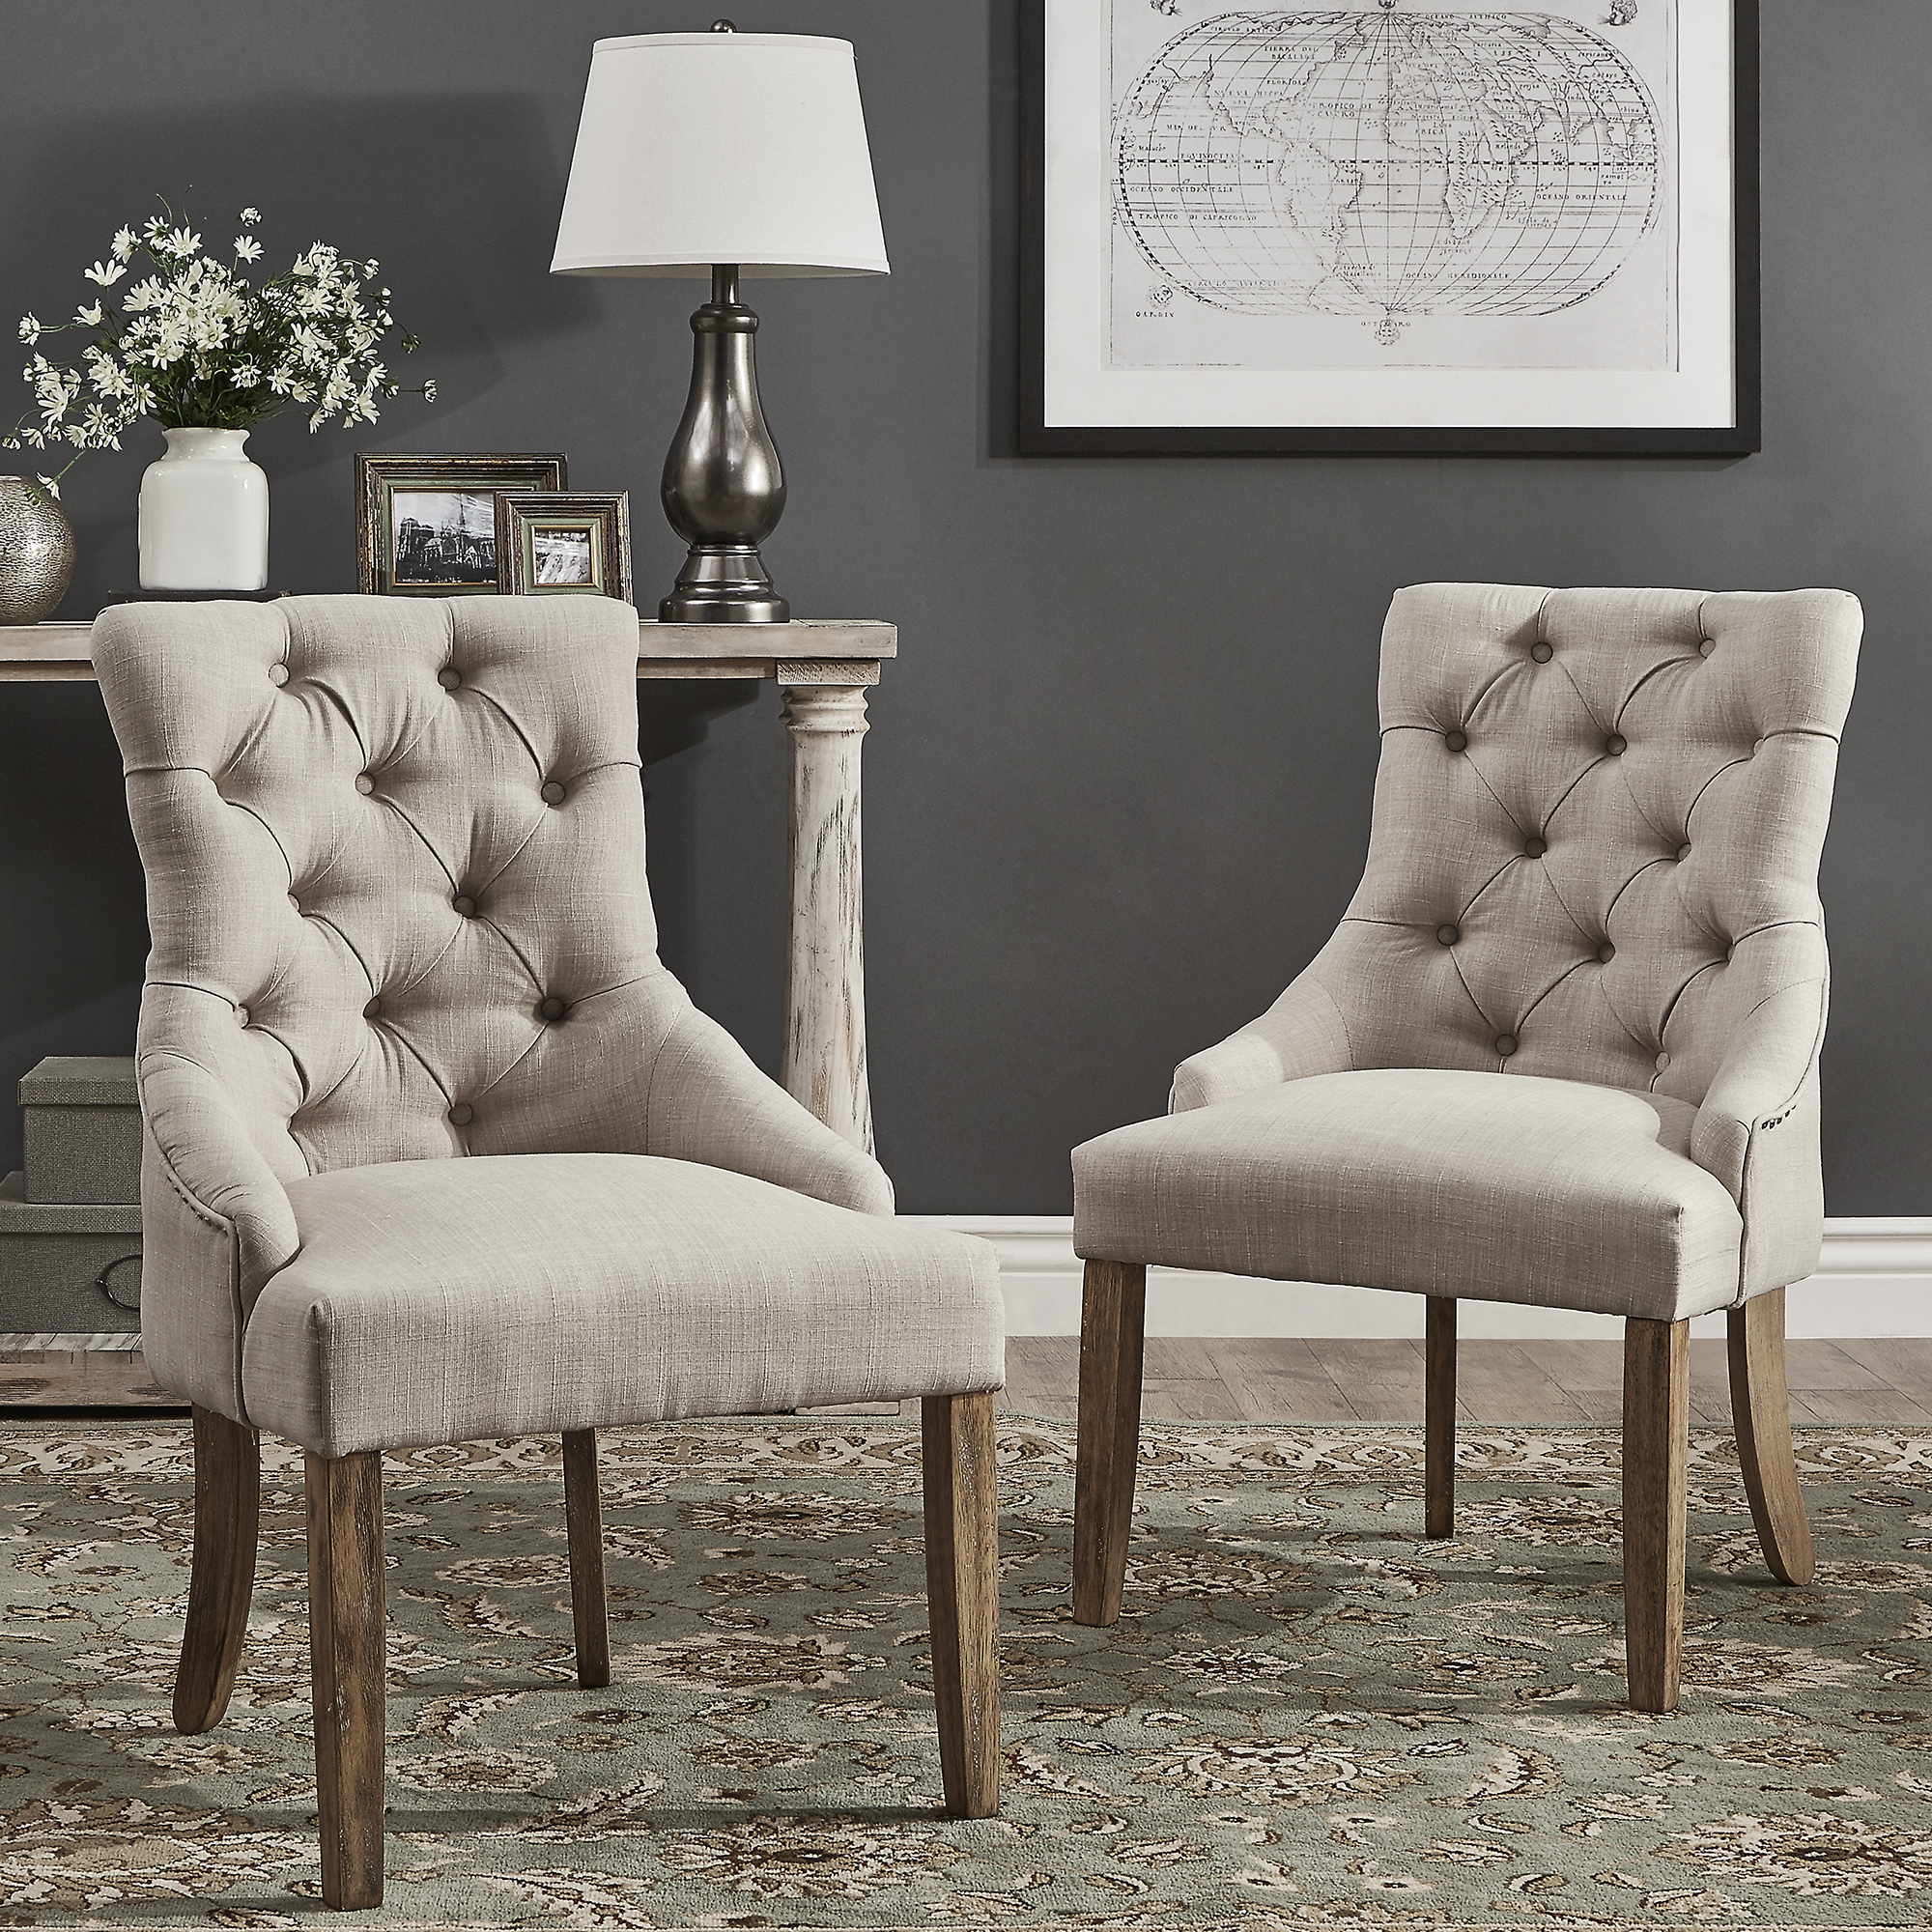 Chelsea Lane Curved Back Tufted Dining Chair, Set of 2